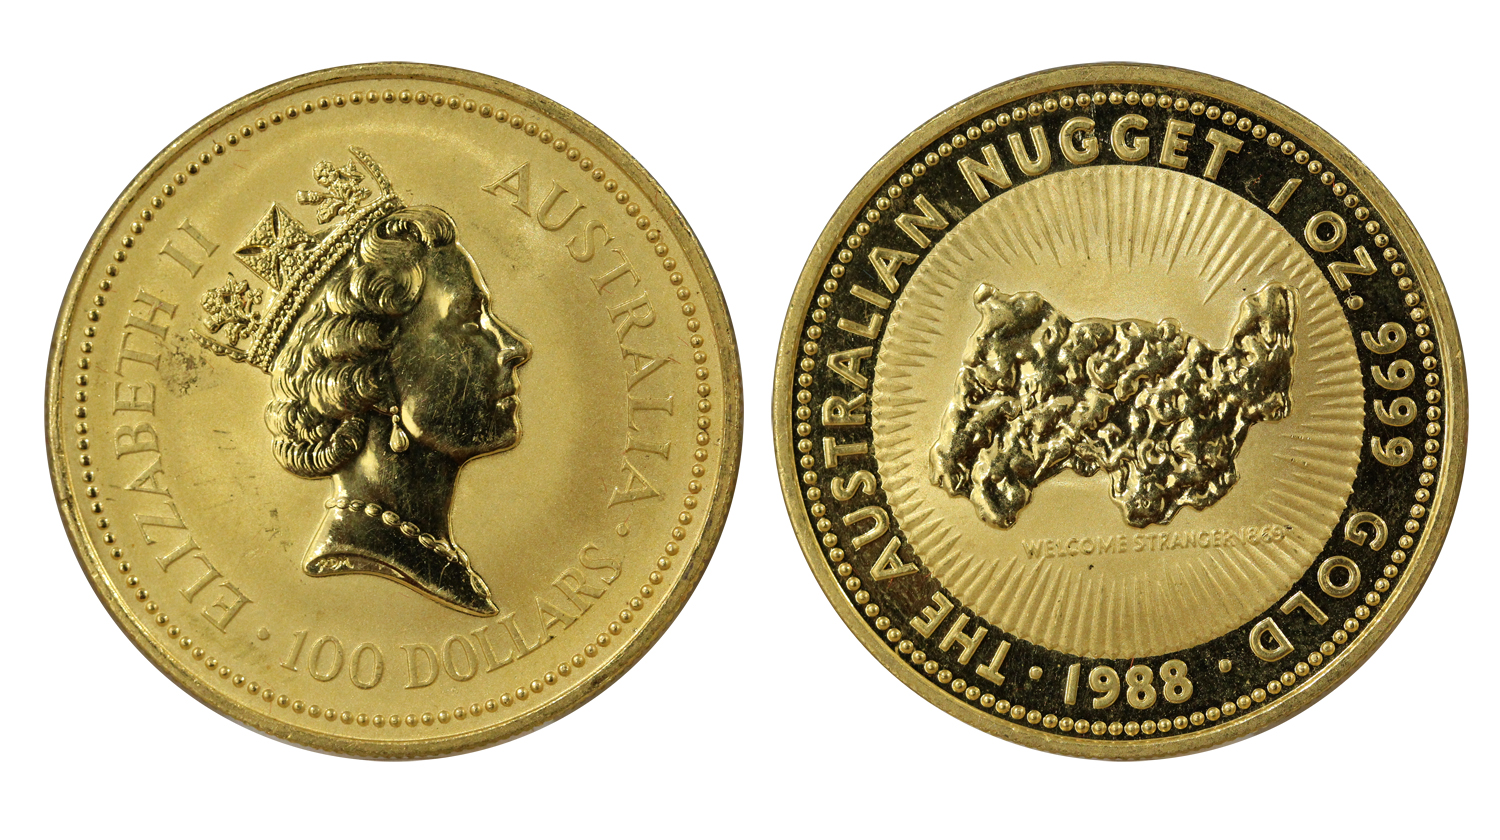 Nugget - 100 dollari di gr. 31,103 in oro 999/000